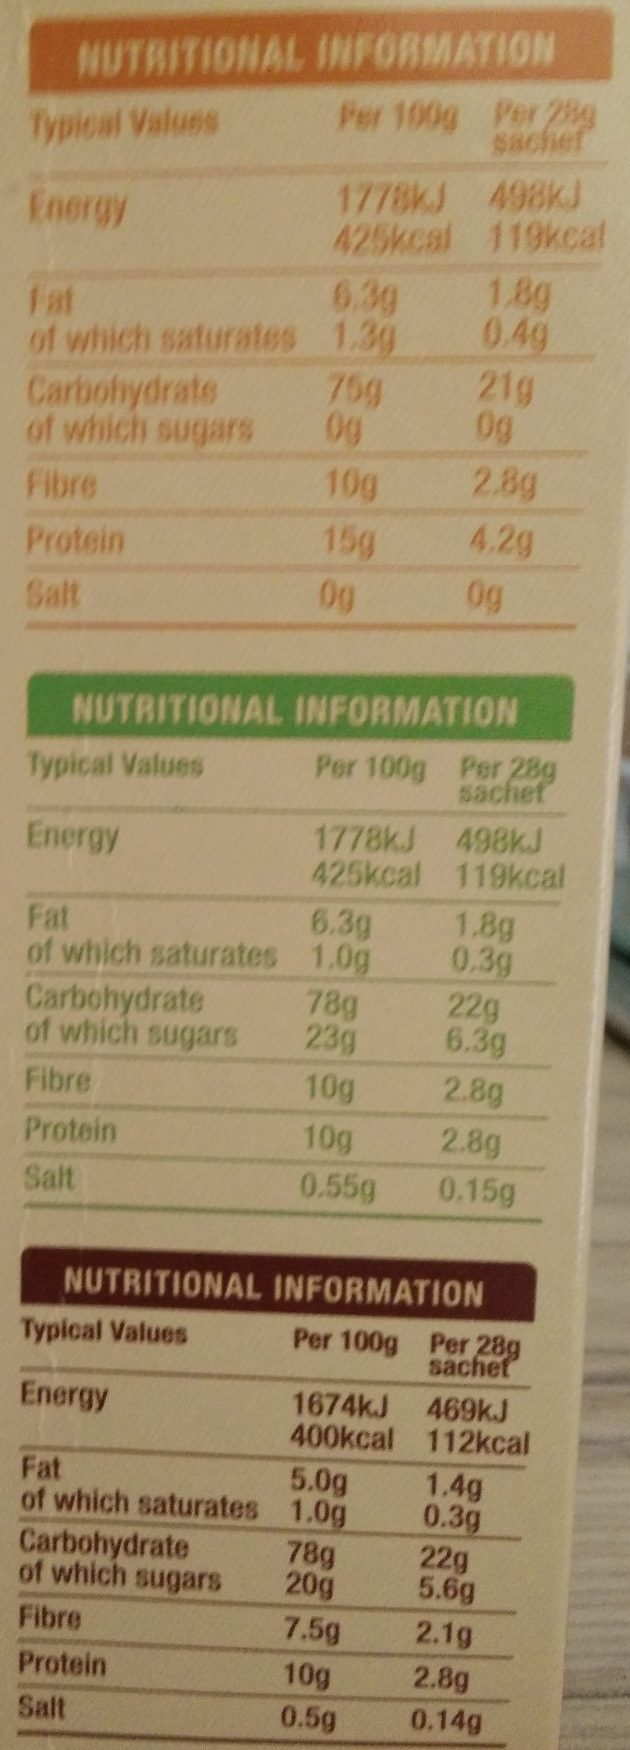 Hot & Steamy Porridge Oats - Nutrition facts